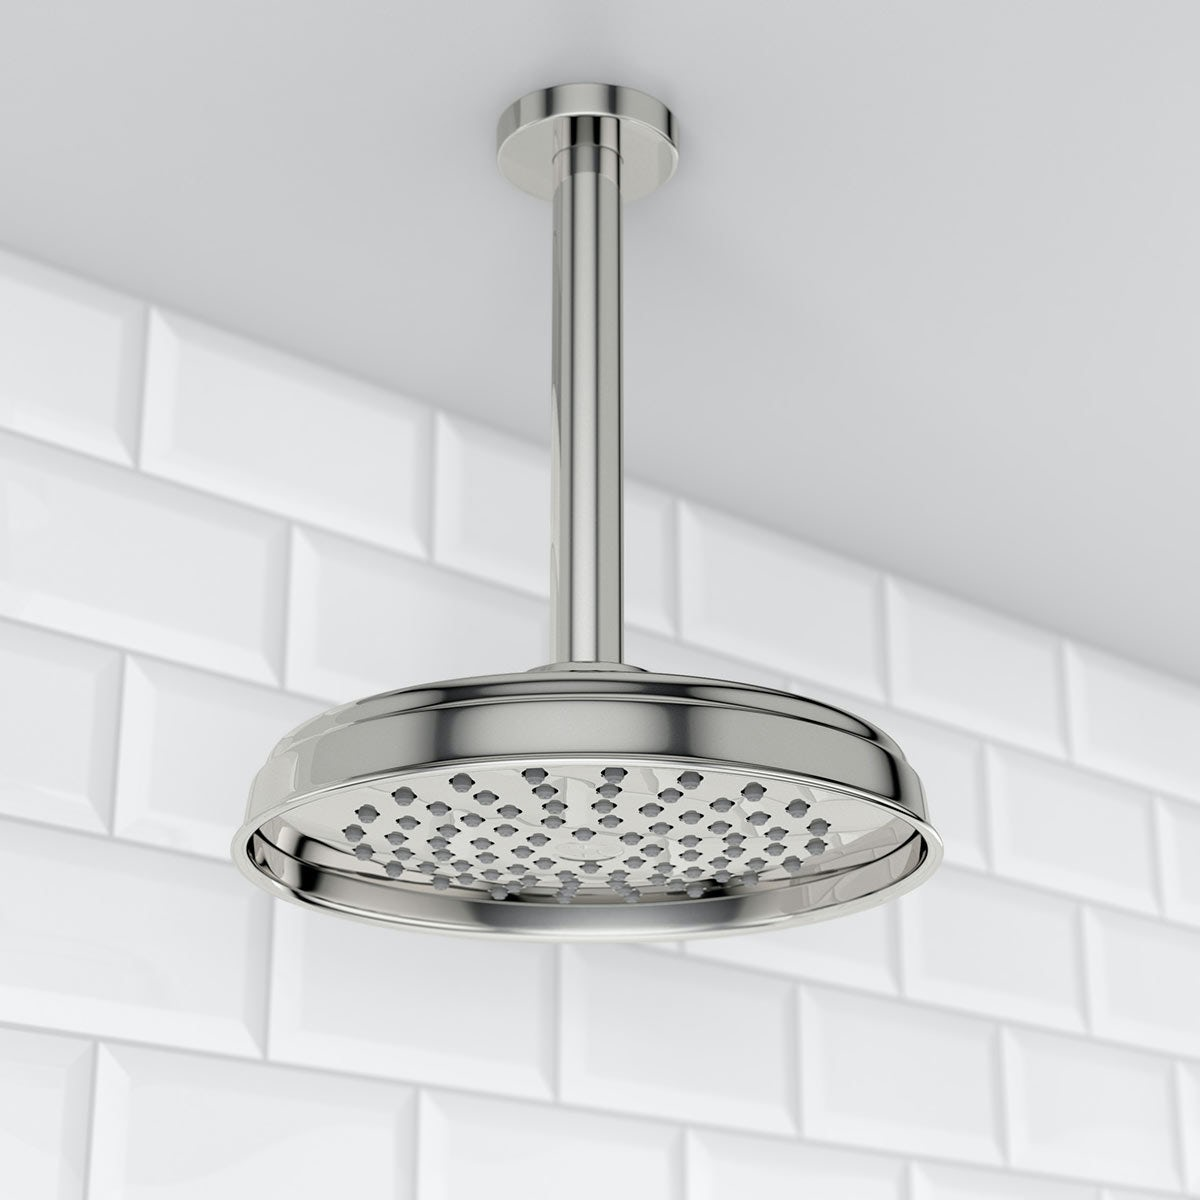 The Bath Co Rain Can Shower Head With Round Ceiling Arm